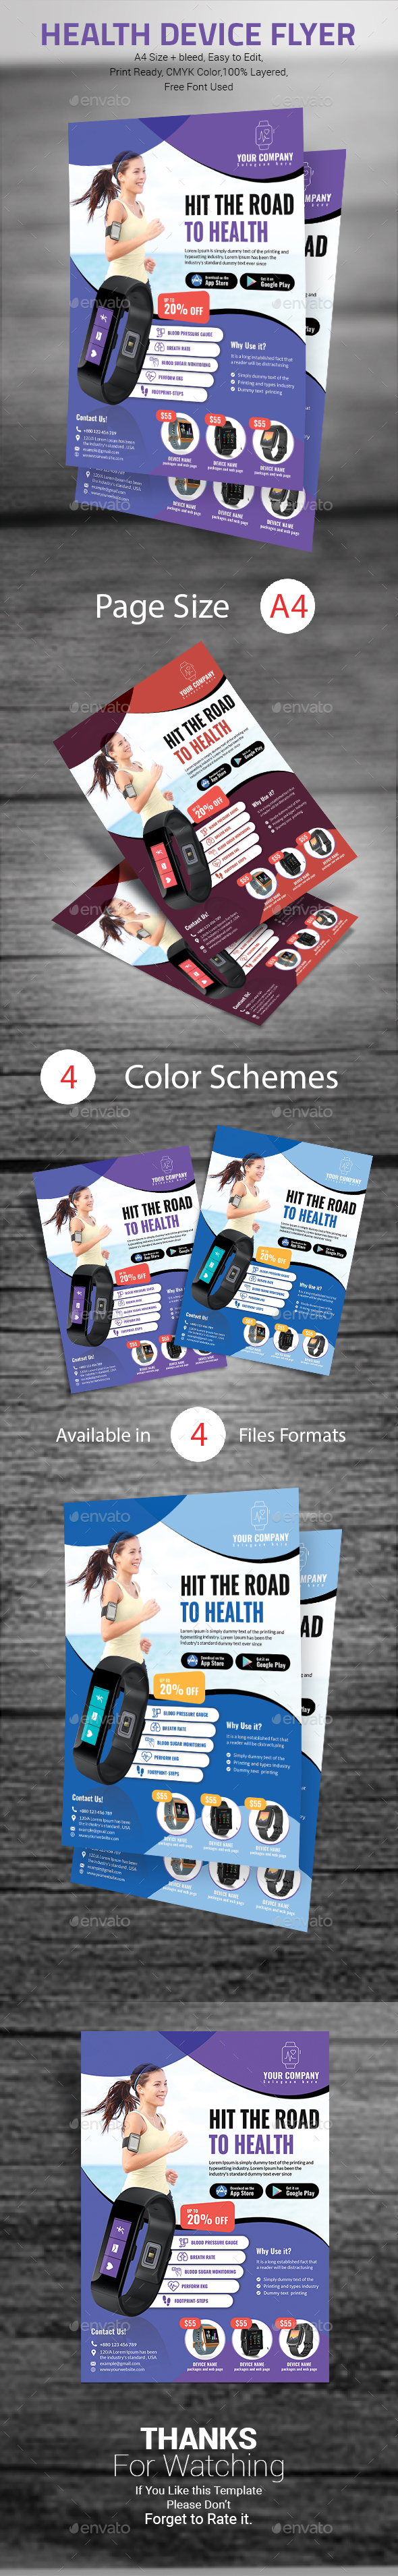 Health Device Flyer - Commerce Flyers